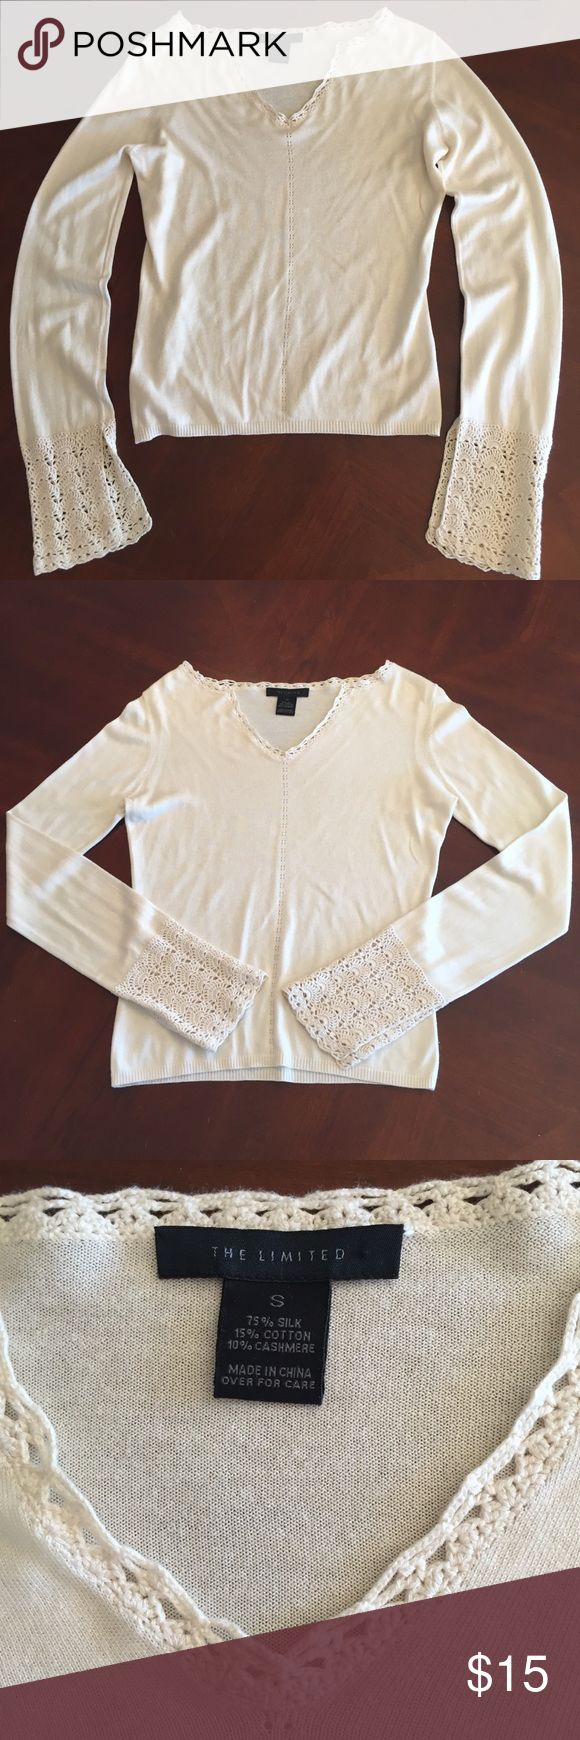 The Limited brand sweater, GUC. V-neck, off-white colored sweater from The Limited. Crochet  like detailed trim at end of sleeves with a slit on one side. Made of 75% silk, 10% cashmere, and 15% cotton. GUC, no stains or tears. The Limited Sweaters V-Necks